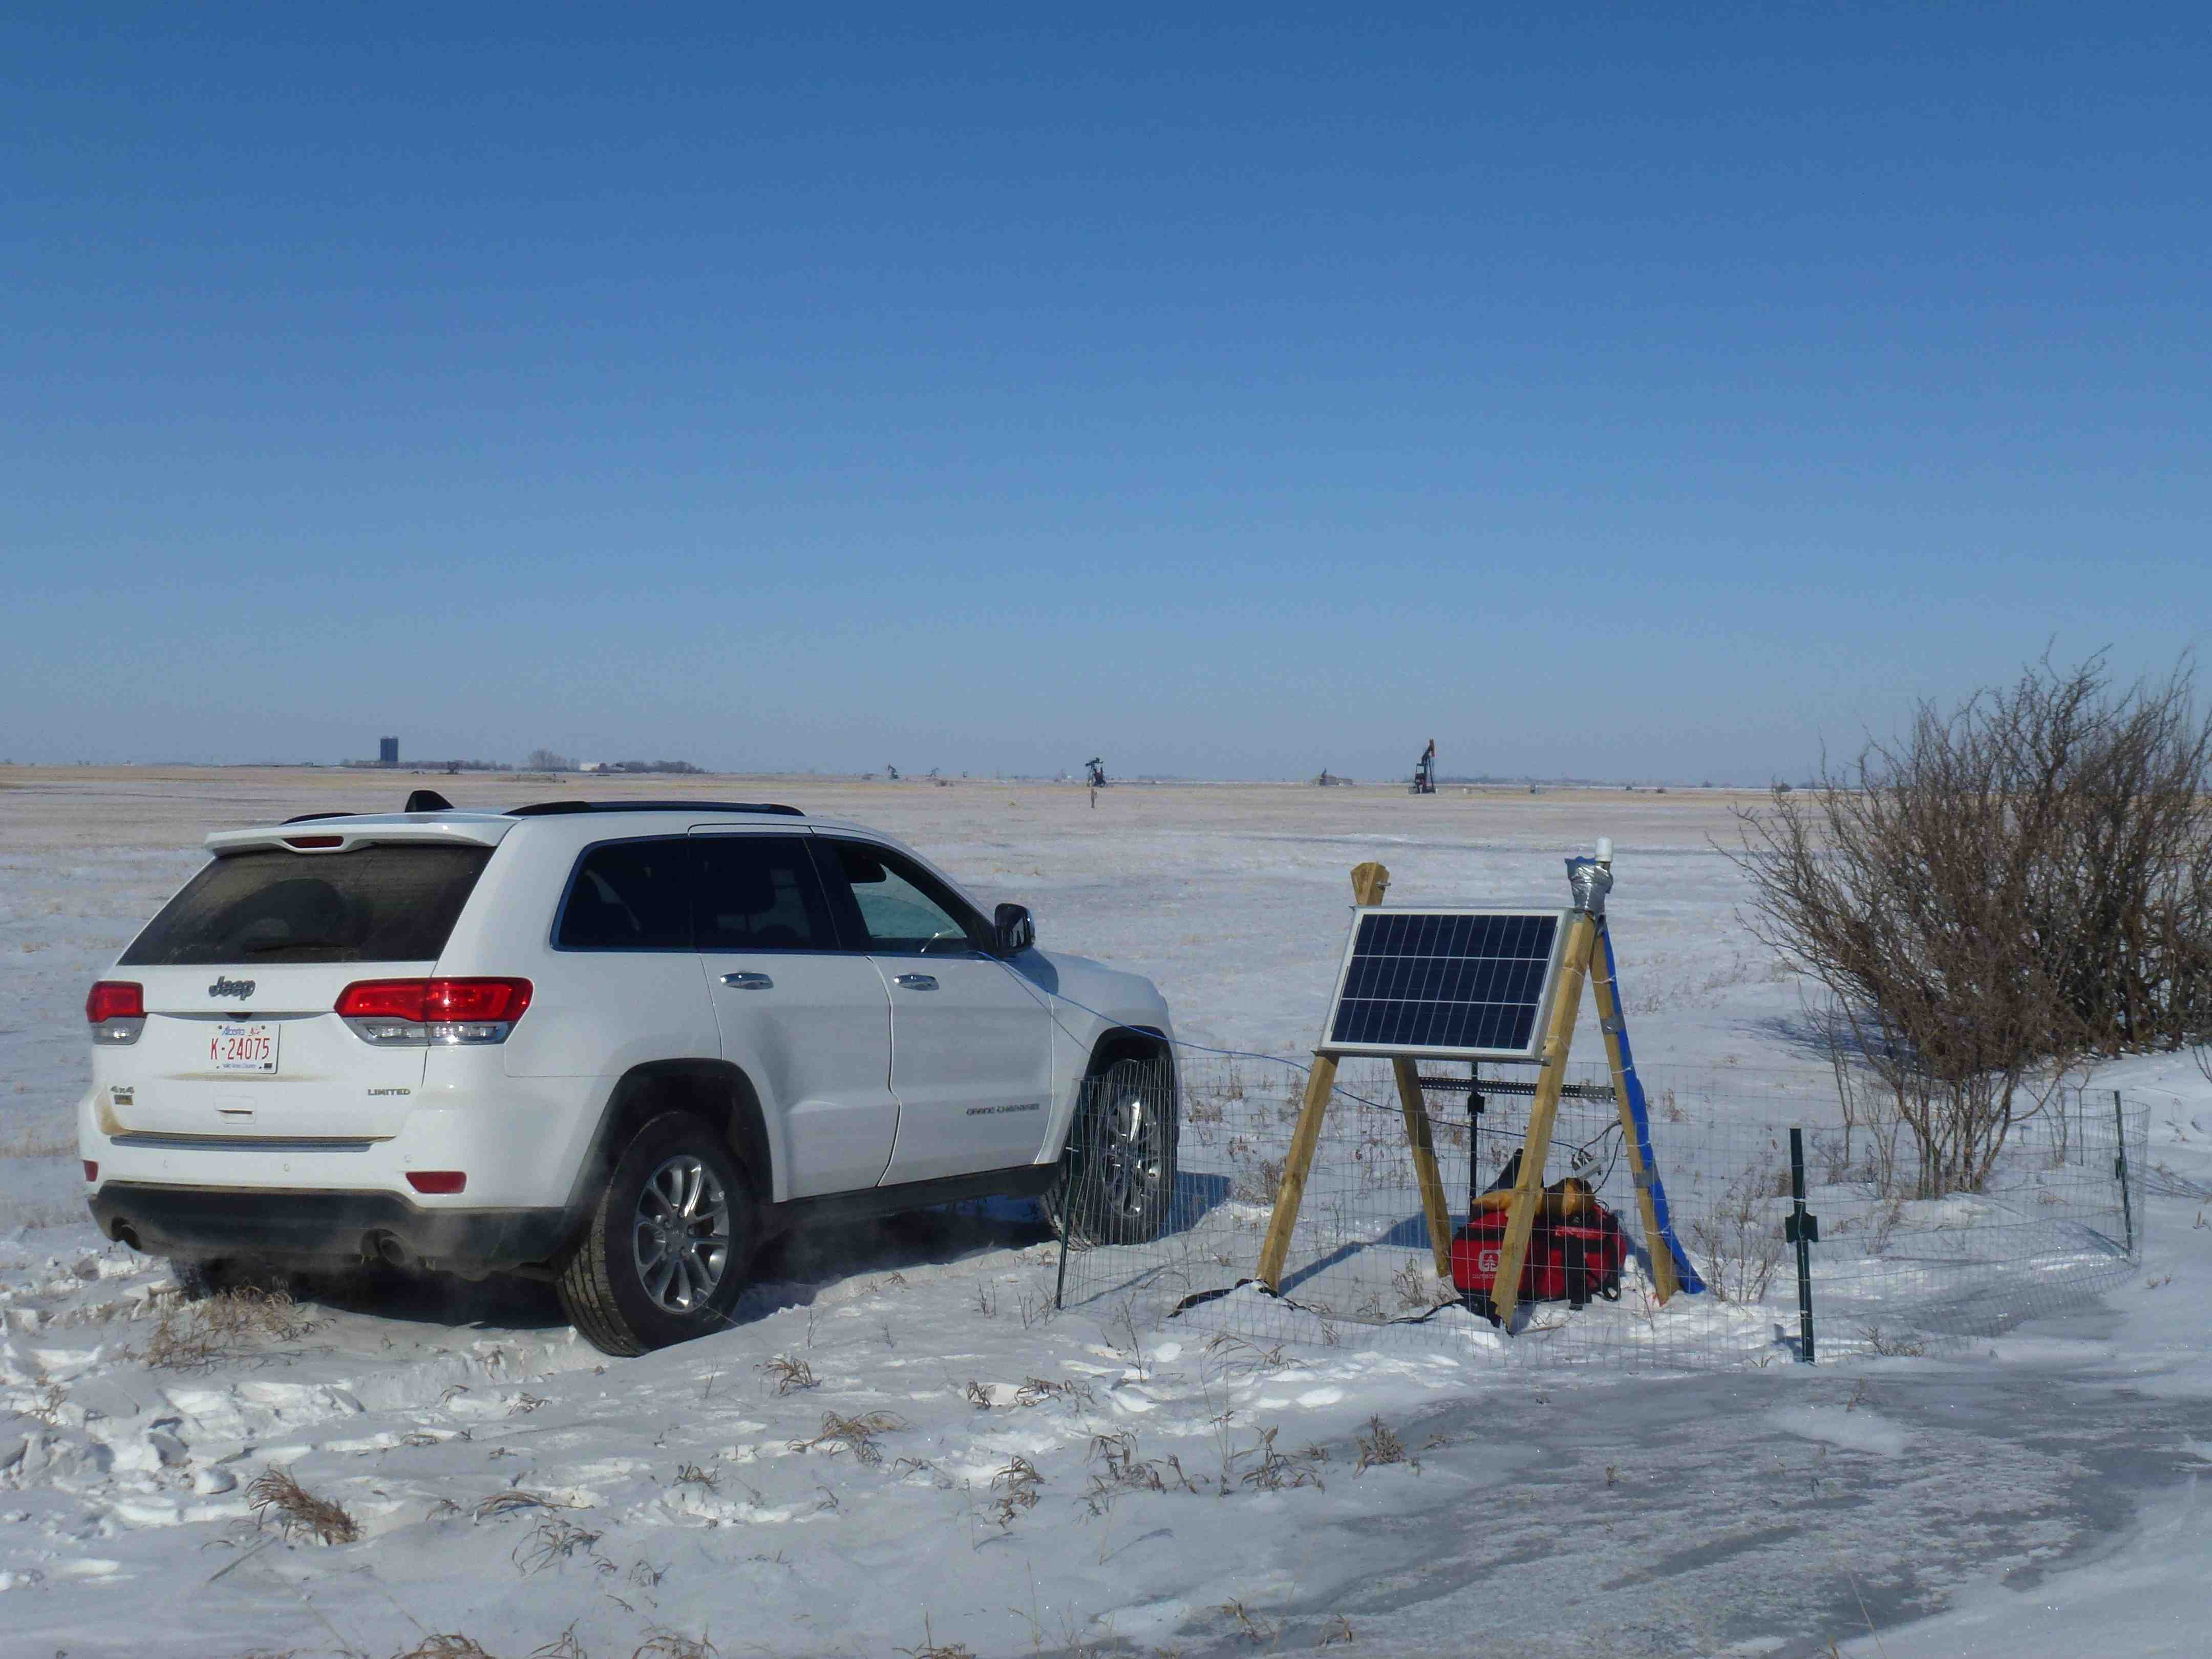 Servicing one of our Weyburn sites in the depths of the Canadian winter, with temperatures as low as -20<sup>o</sup>C